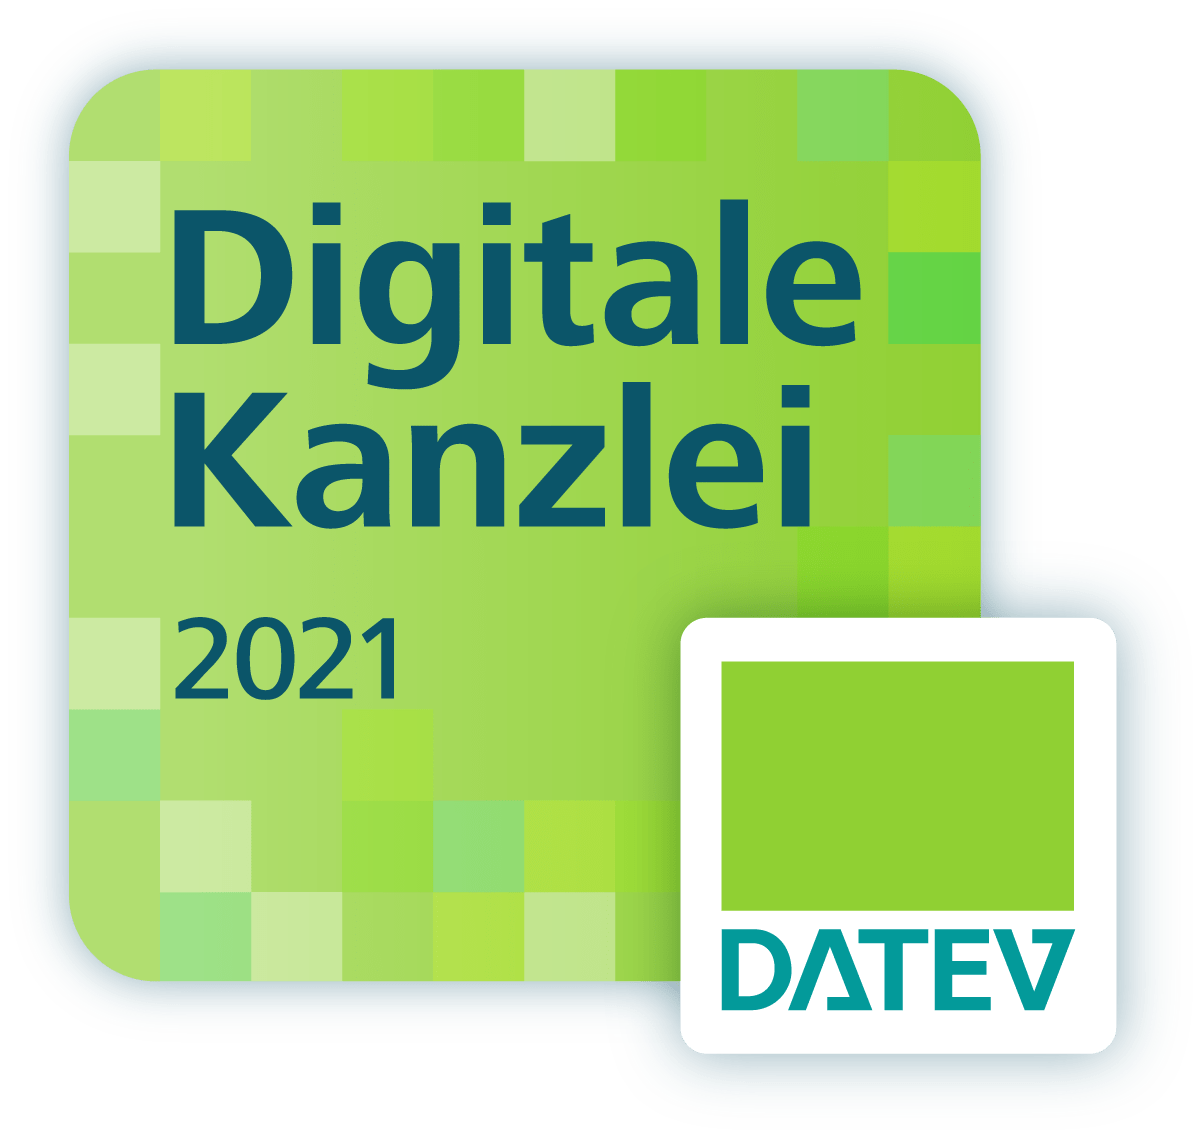 Datev-Digitale-Kanzlei-2021 Icon